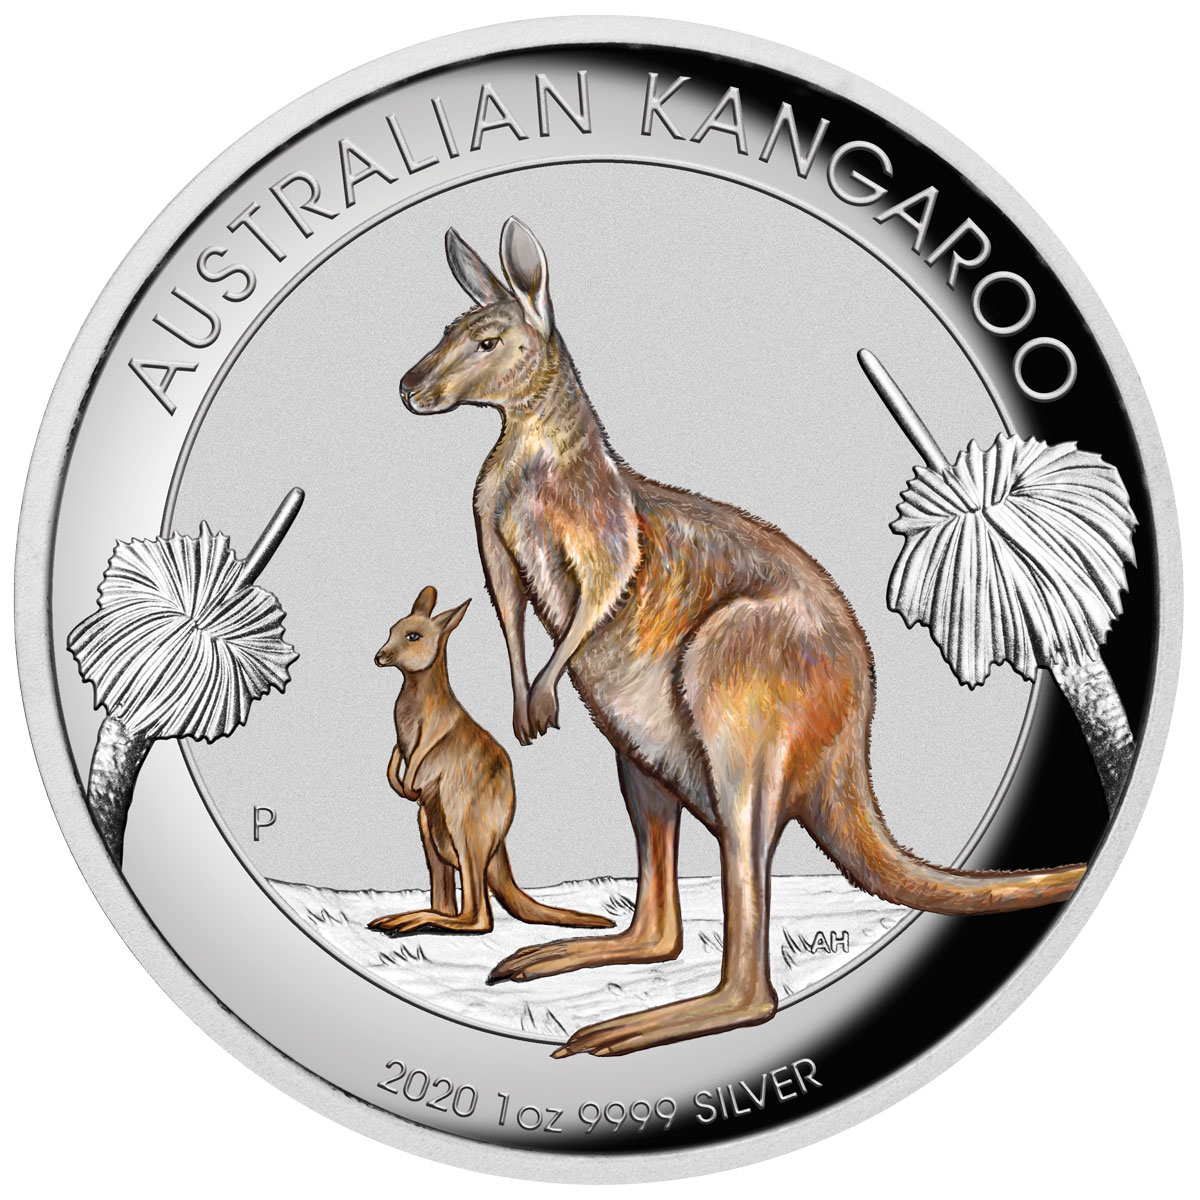 2020-P Australia $1 1 oz Silver Kangaroo Colorized High Relief Proof Coin GEM Proof OGP